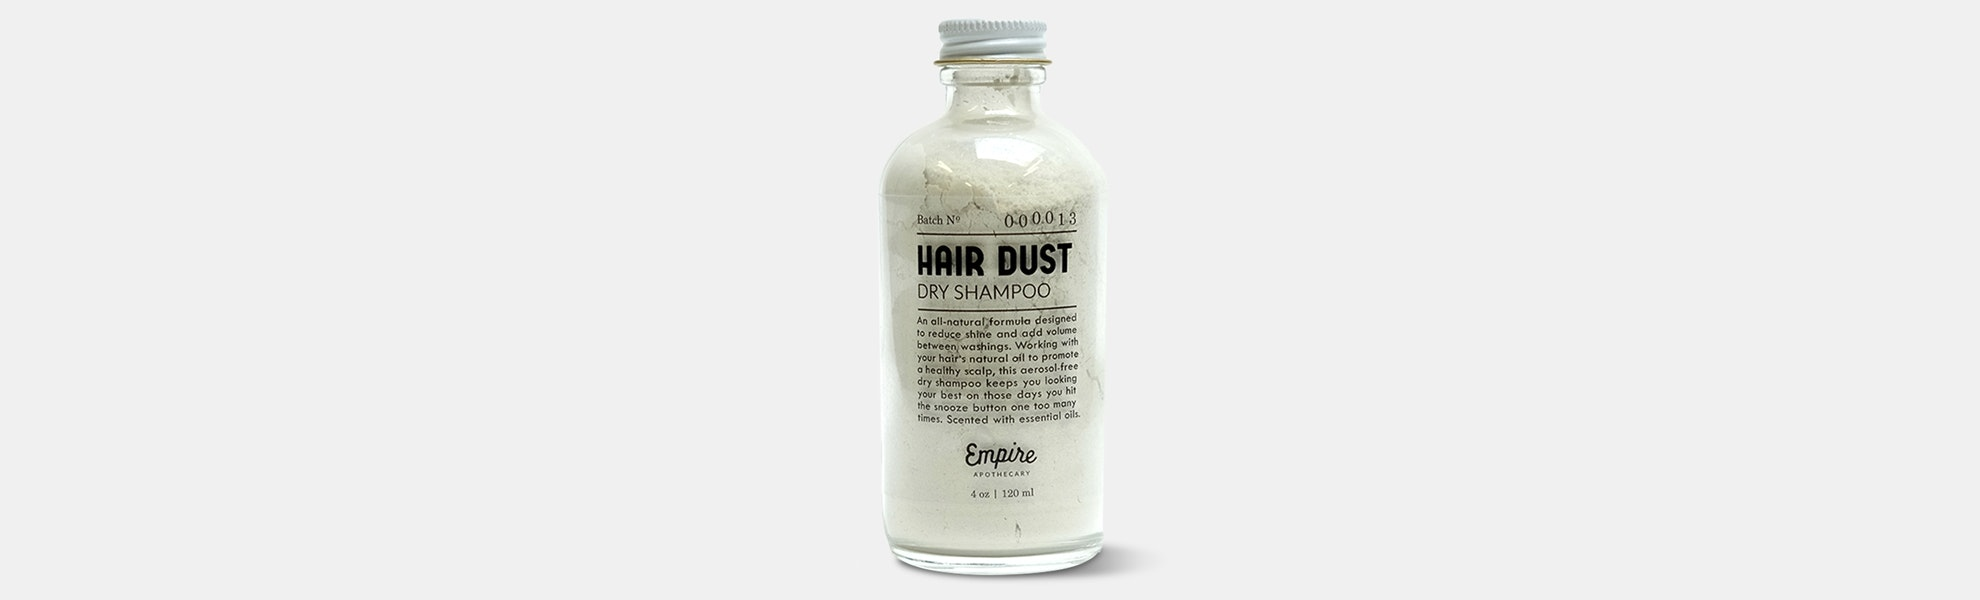 Empire Apothecary Hair Dust Dry Shampoo